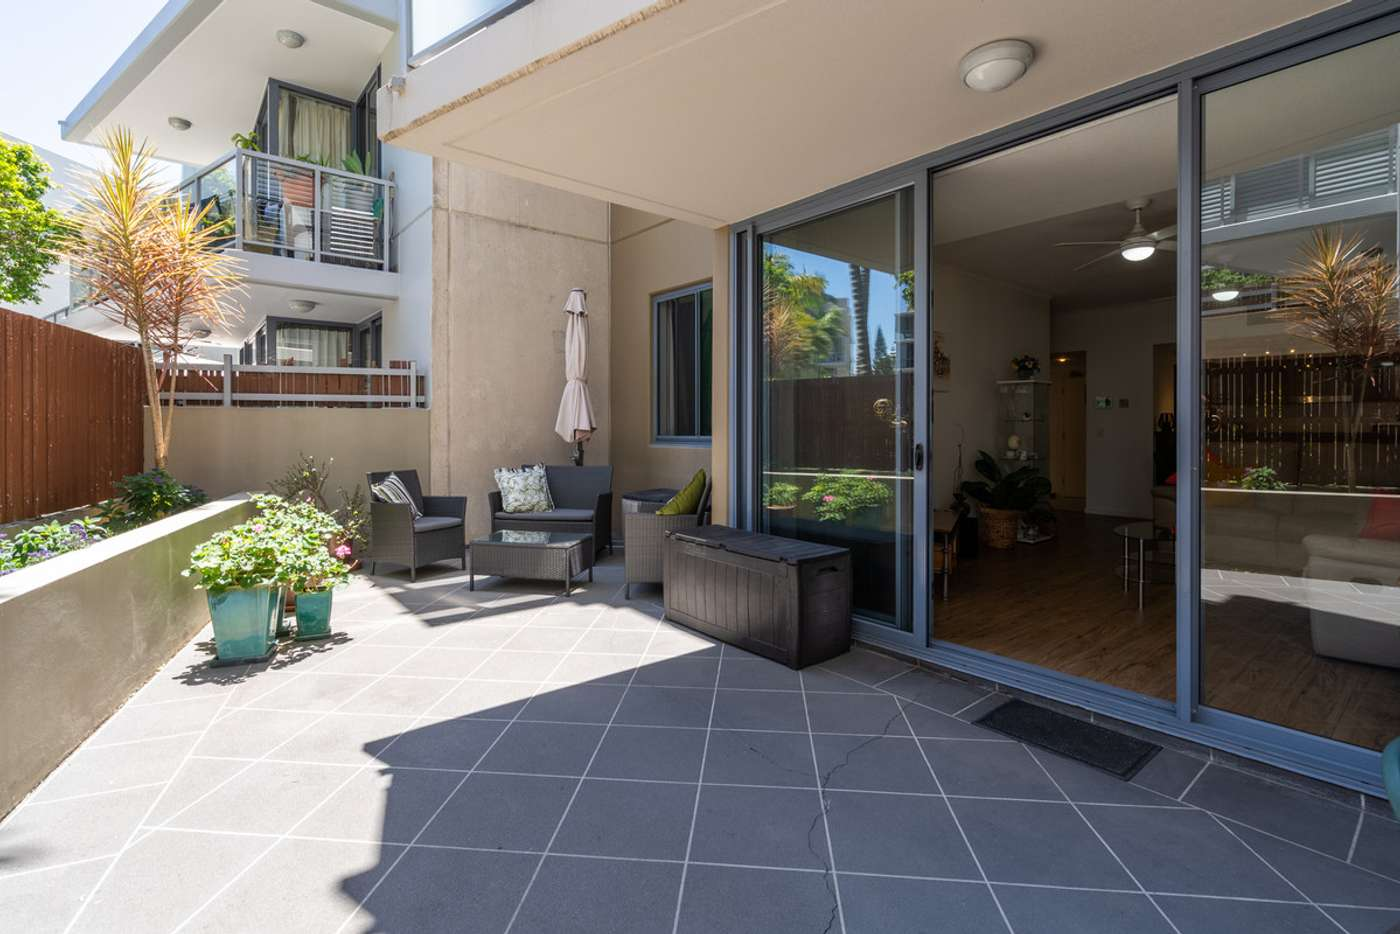 Main view of Homely unit listing, 2008/1 Ocean Street, Burleigh Heads QLD 4220